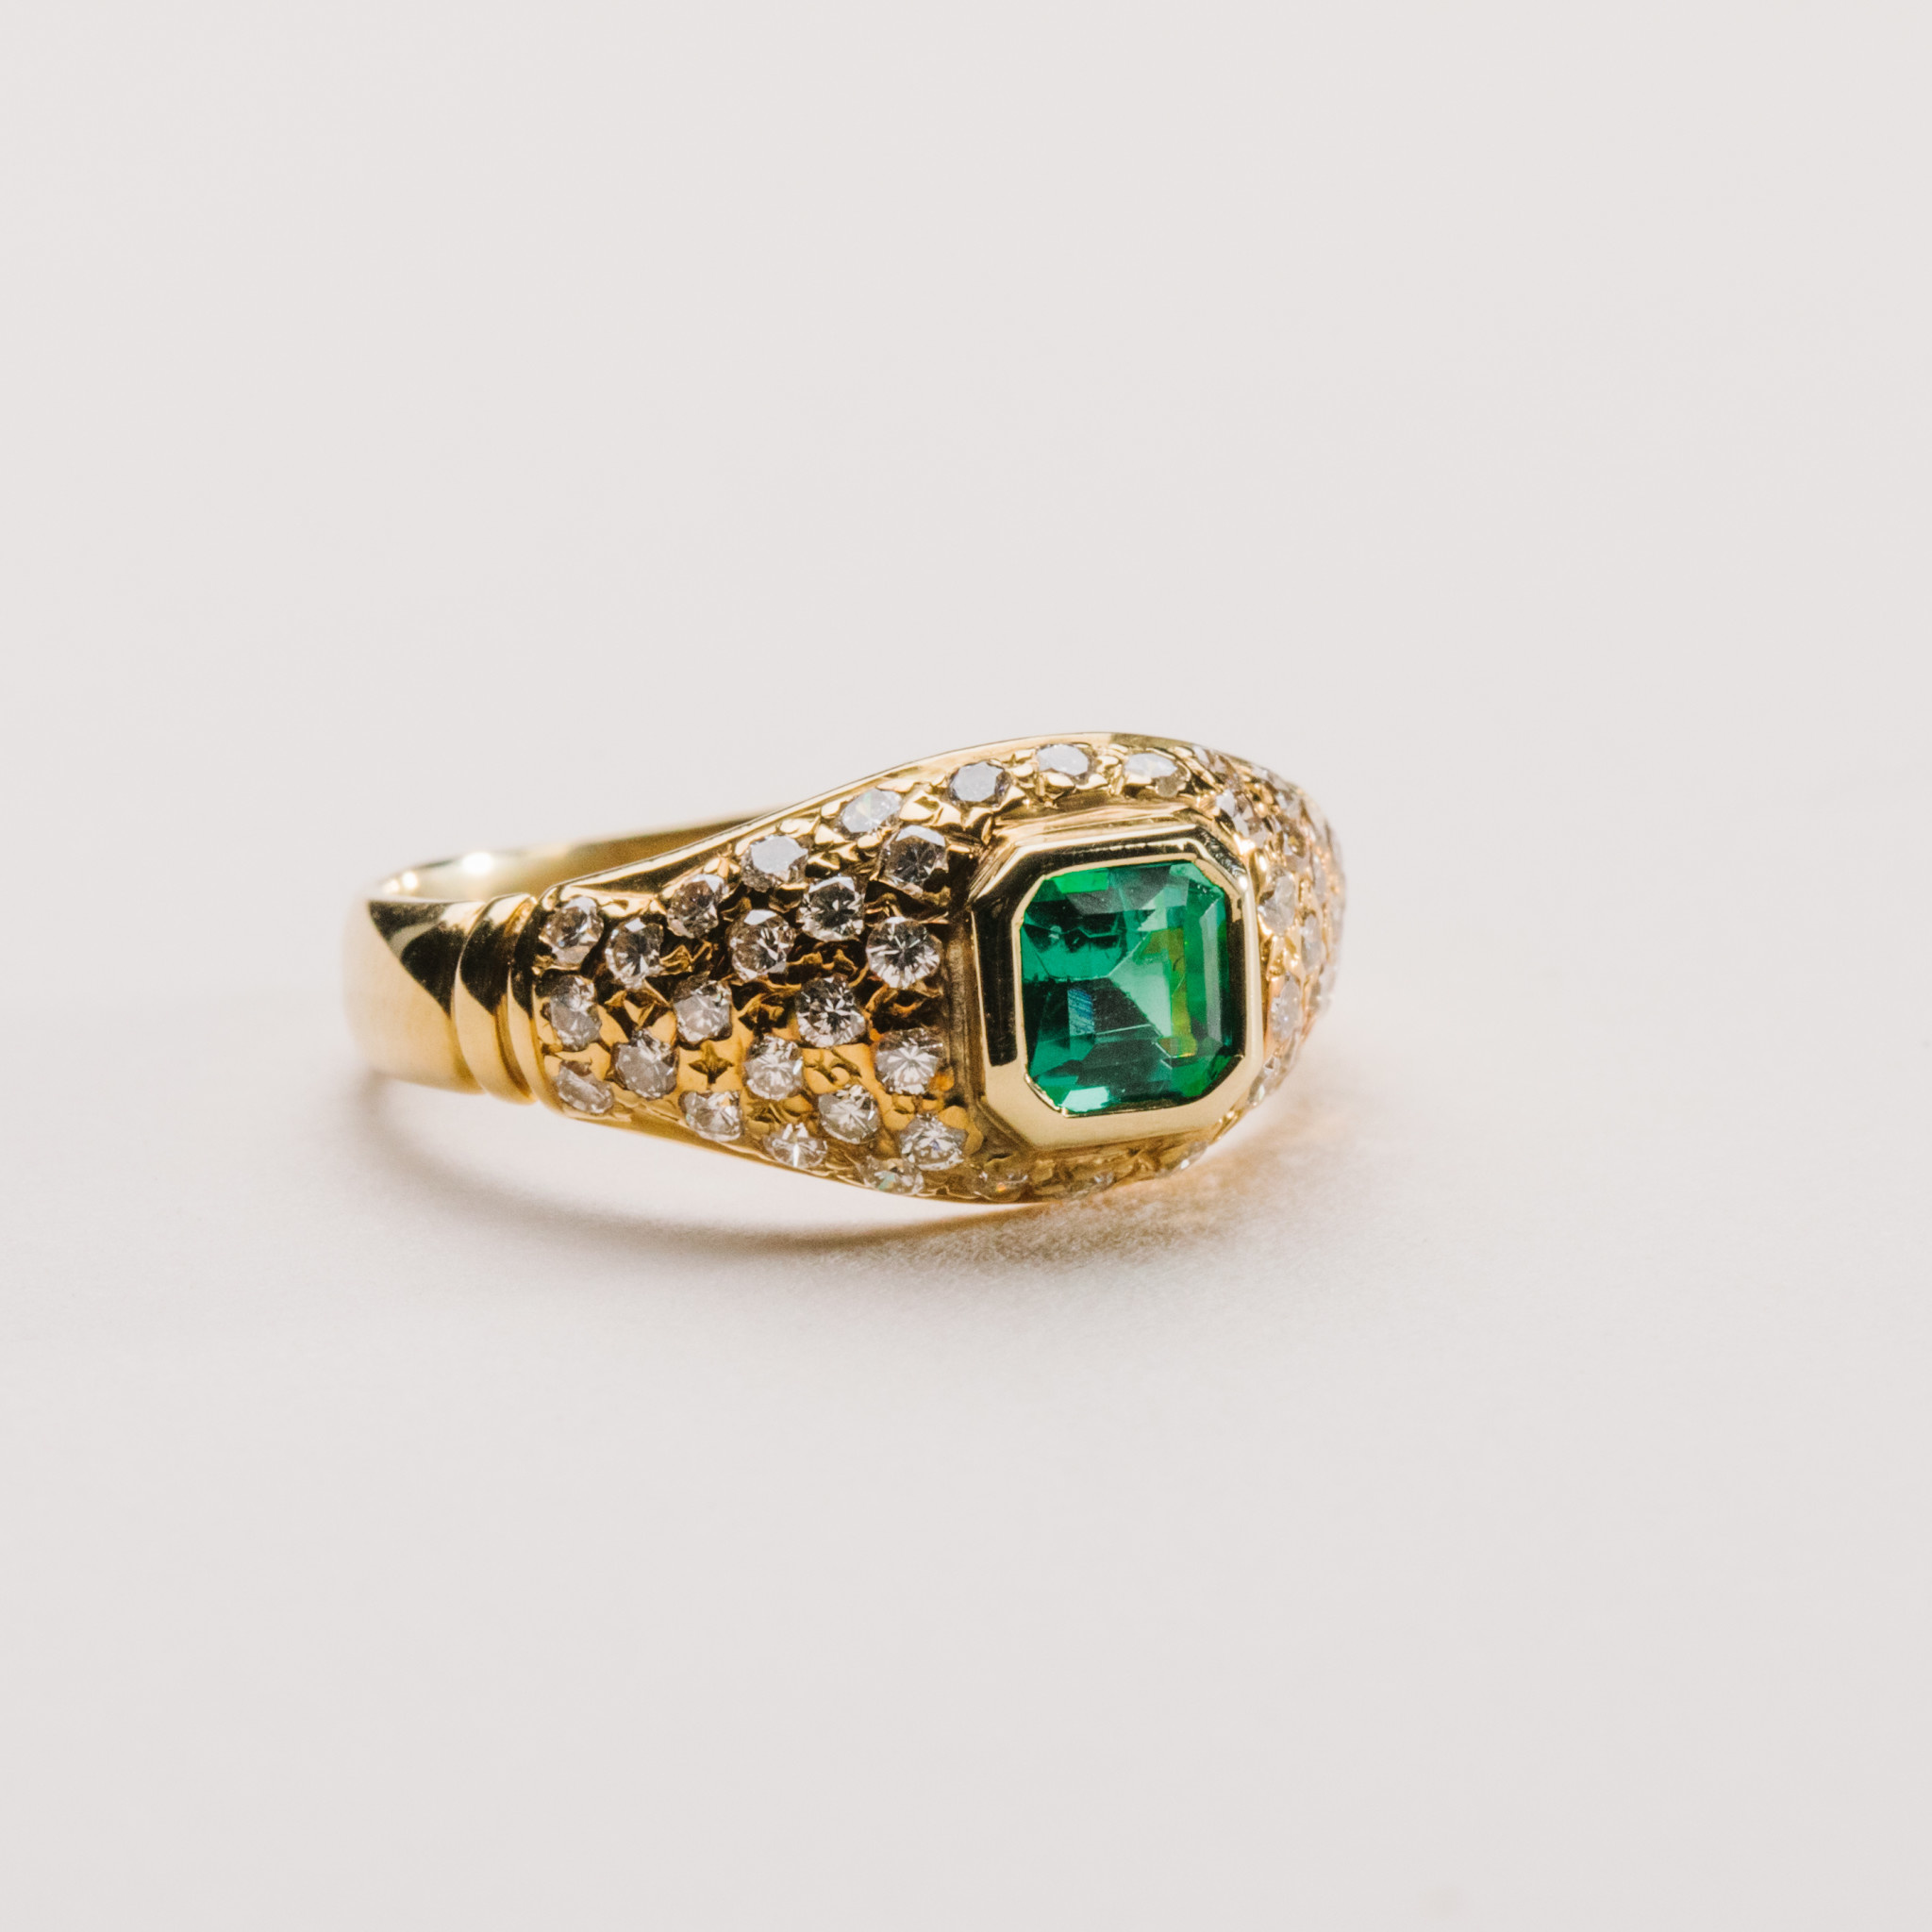 Estate 18kt yellow gold emerald and diamond ring